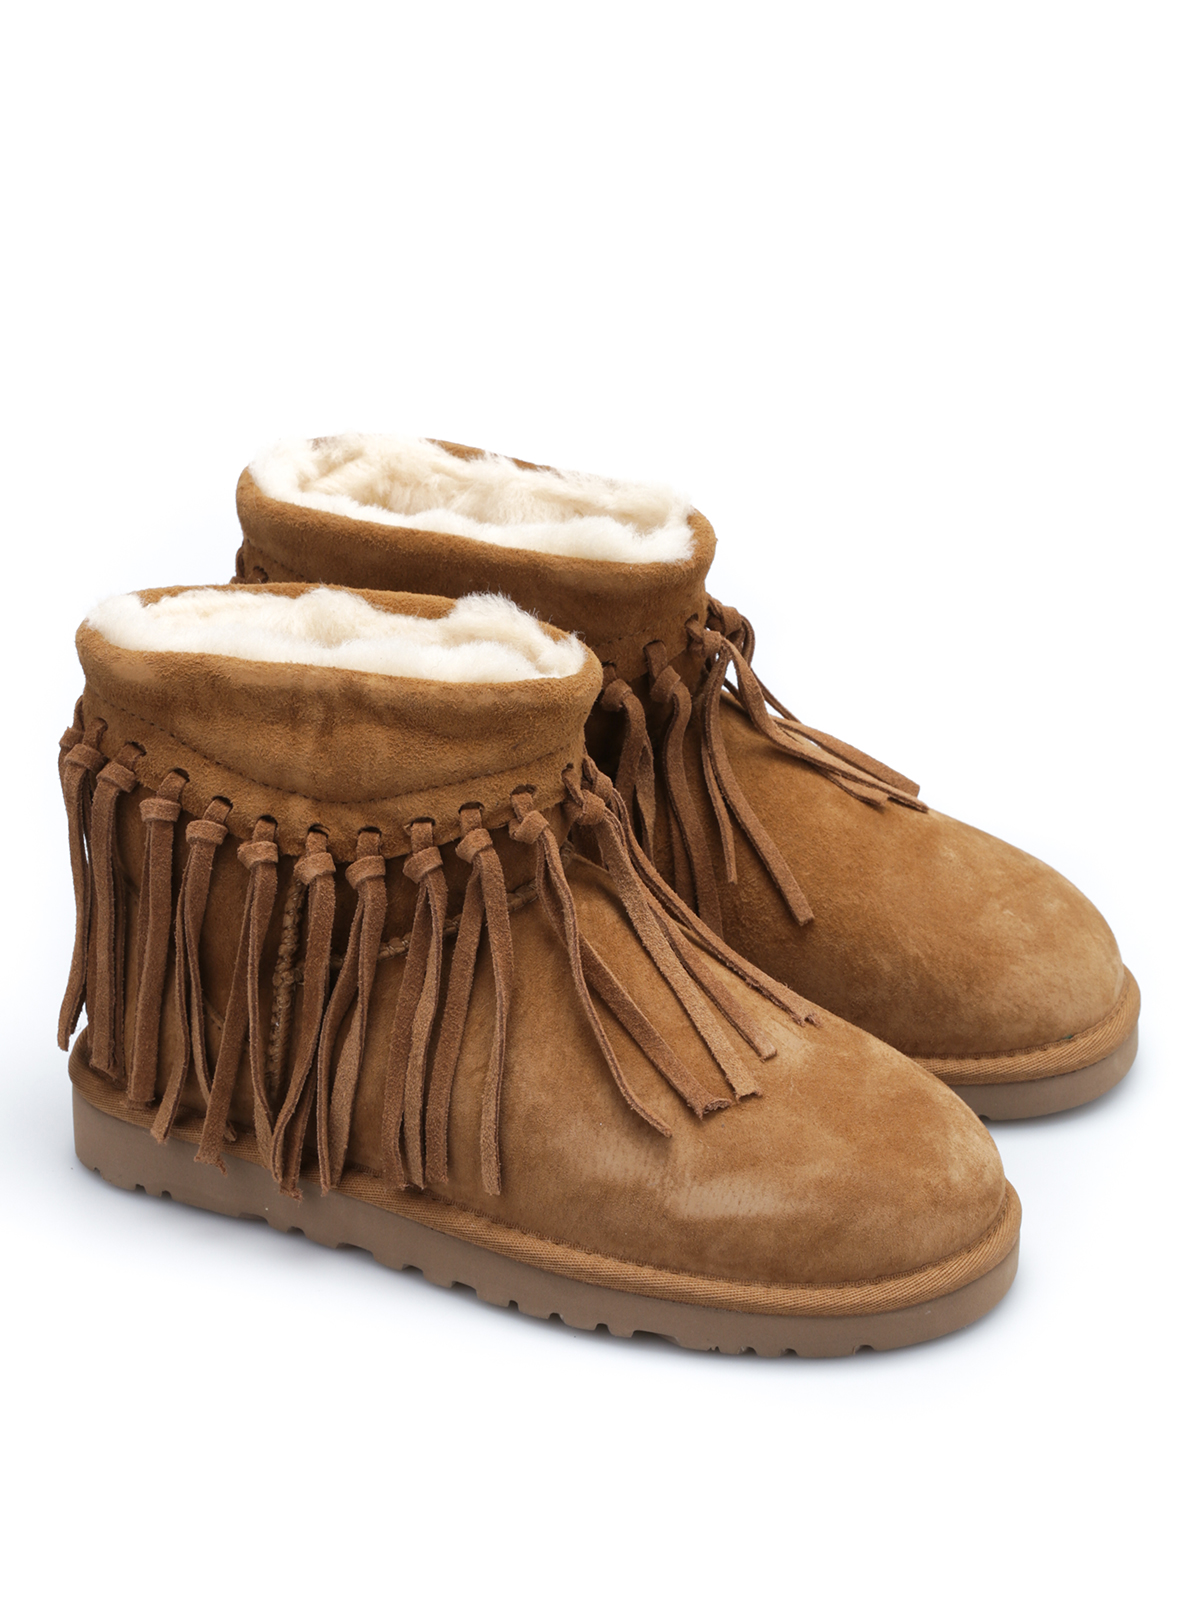 3f339ea439c Uggs Boots Europe - cheap watches mgc-gas.com